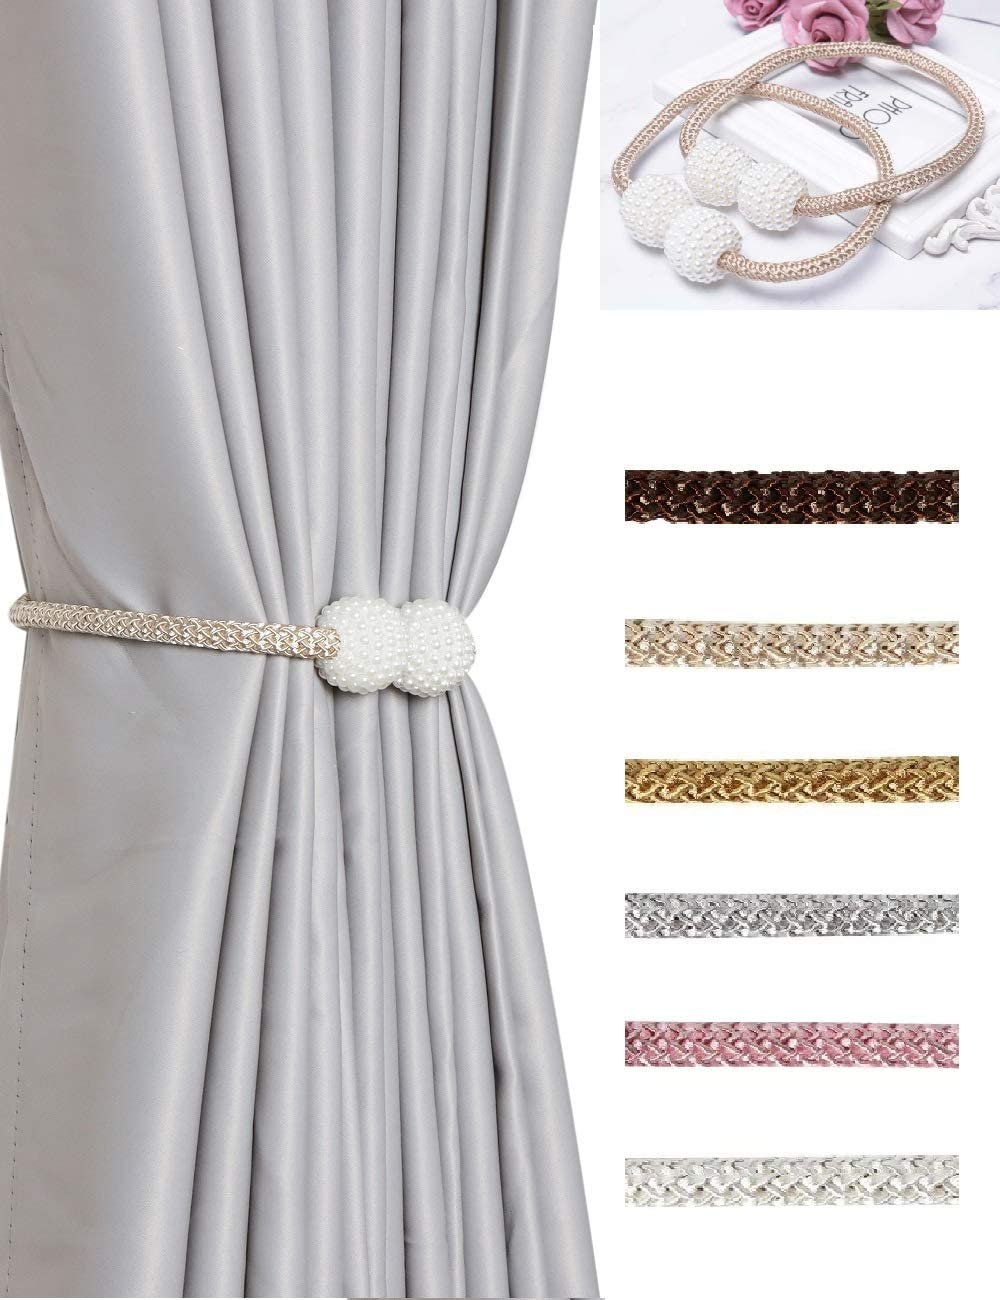 HoHnH cheap Beige 6 Japan Maker New Magnetic Curtain Rope Clips Tiebacks- Decorative H